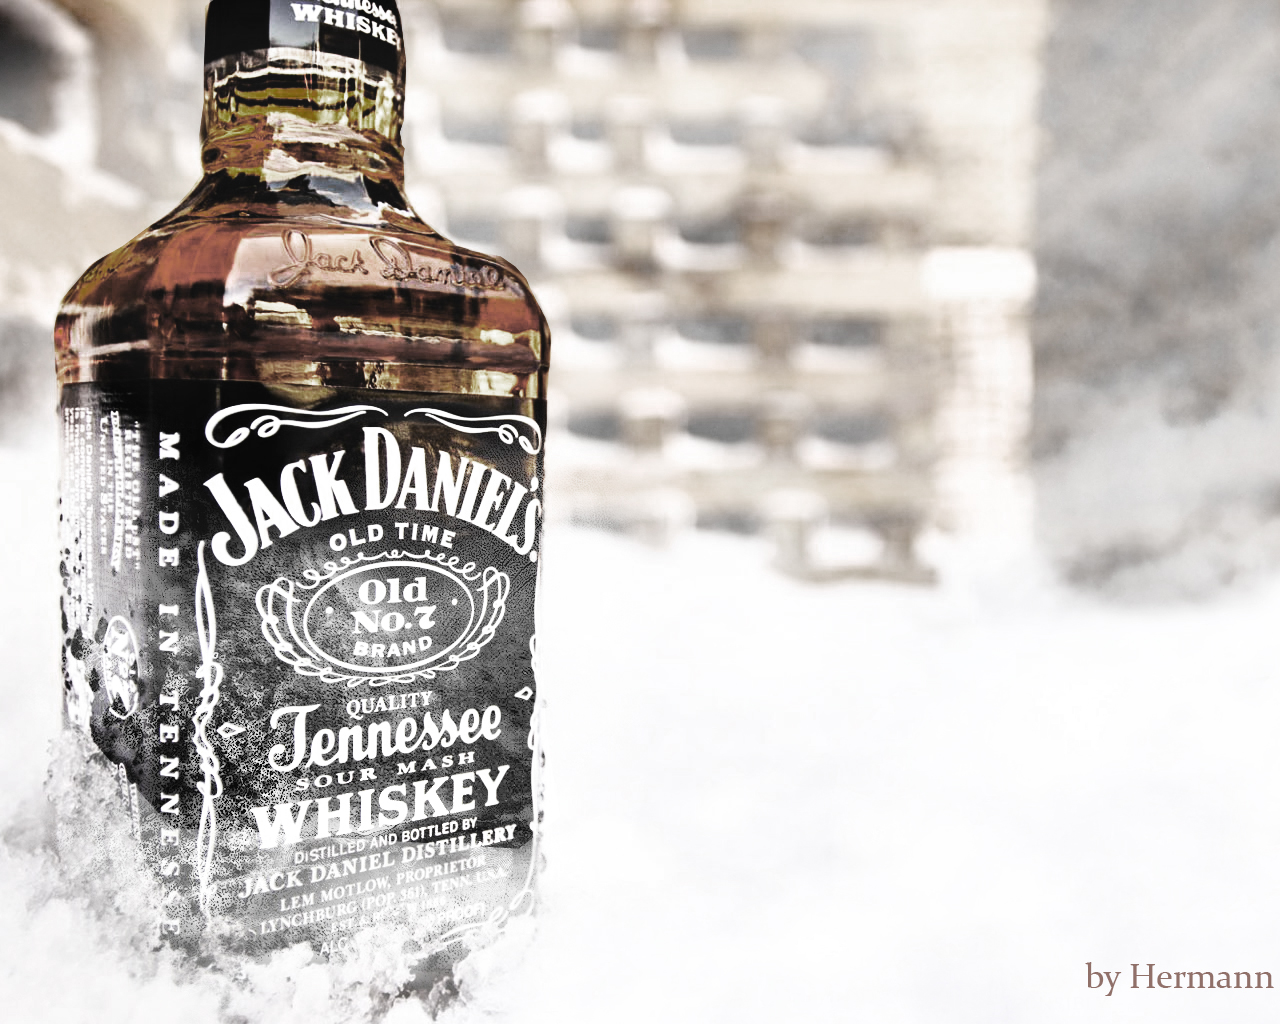 Jack daniels images wallpapers jack daniels hd wallpaper and jack daniels images wallpapers jack daniels hd wallpaper and background photos voltagebd Gallery